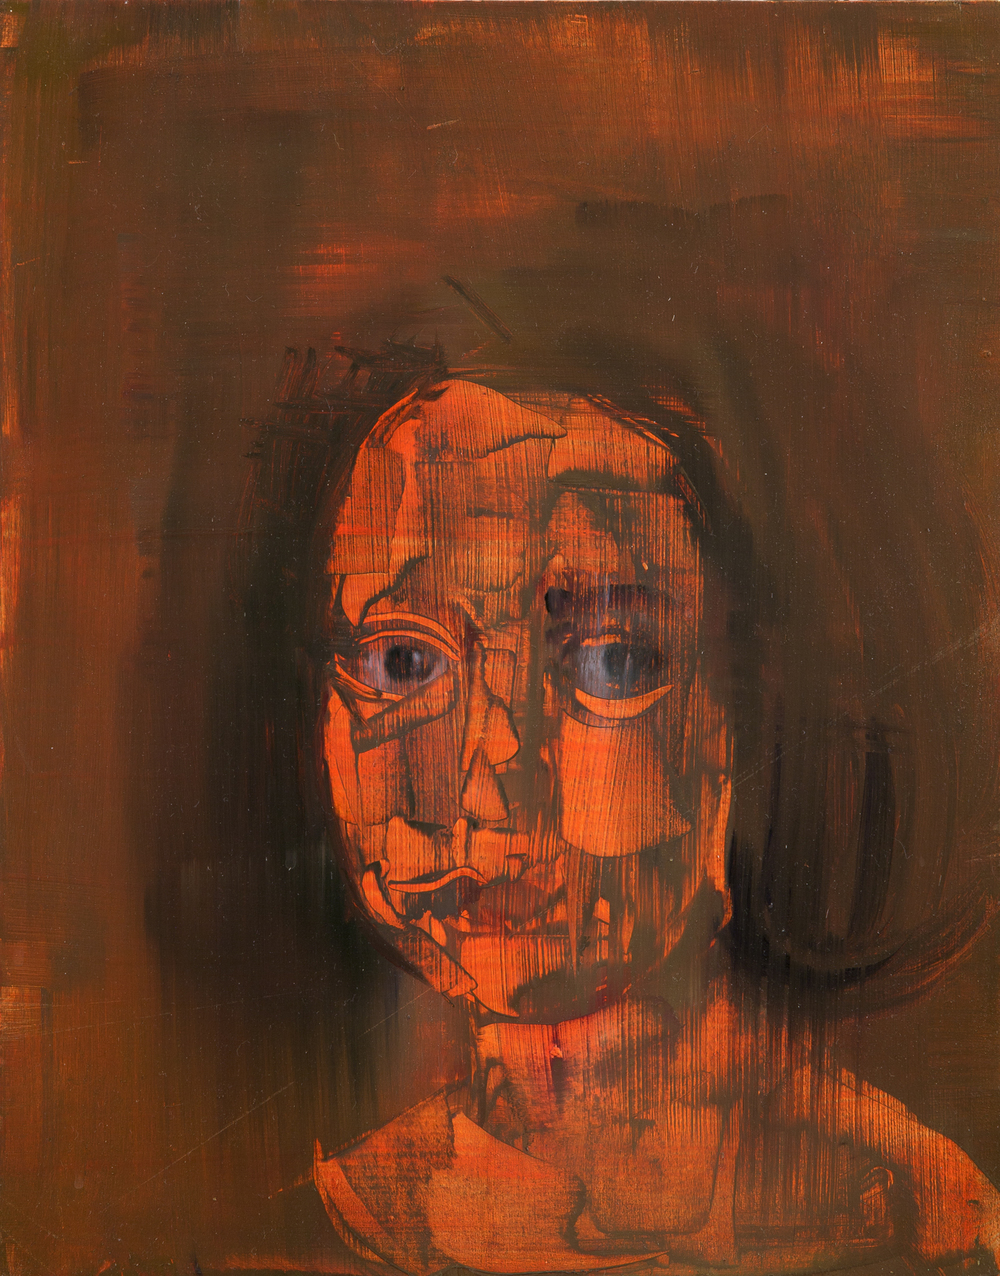 A Little Girl (After Velazquez), 2012